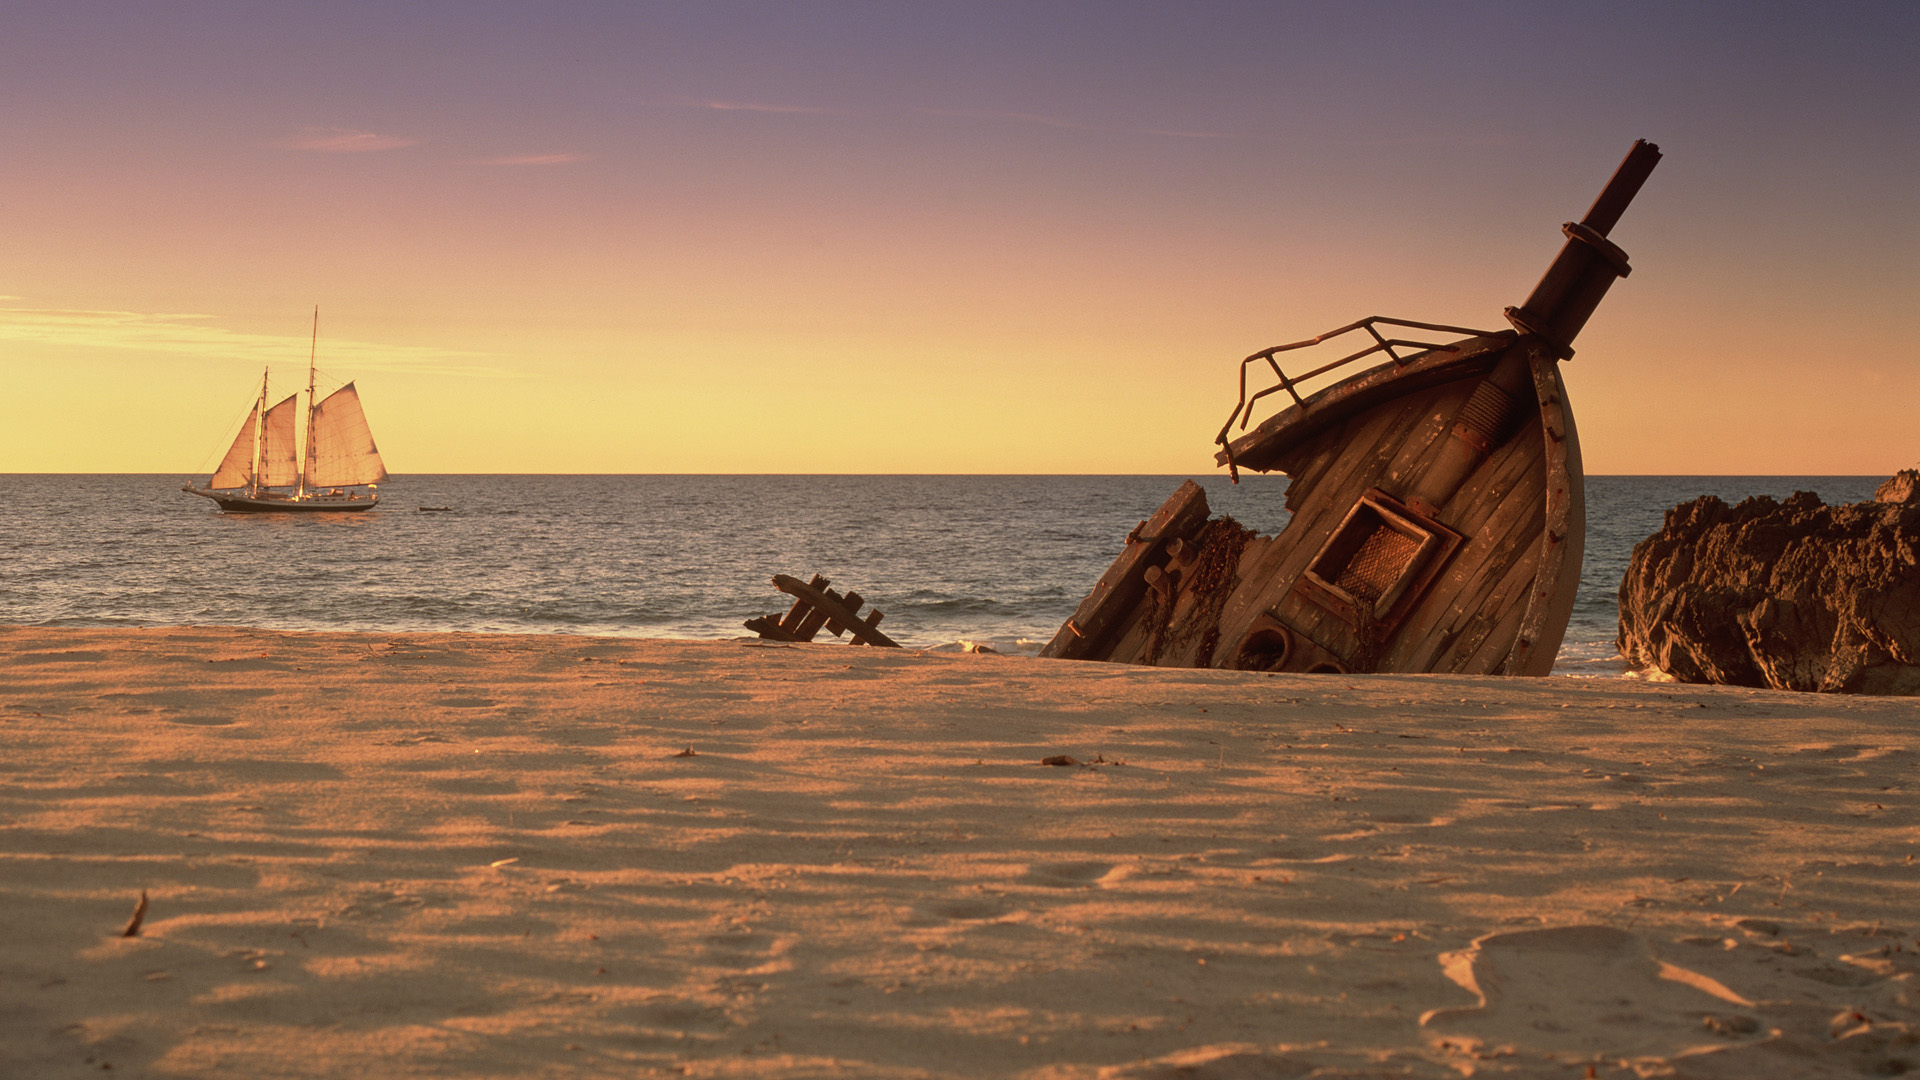 Misc Backgrounds In High Quality Shipwreck by Justin Petrie June 1920x1080